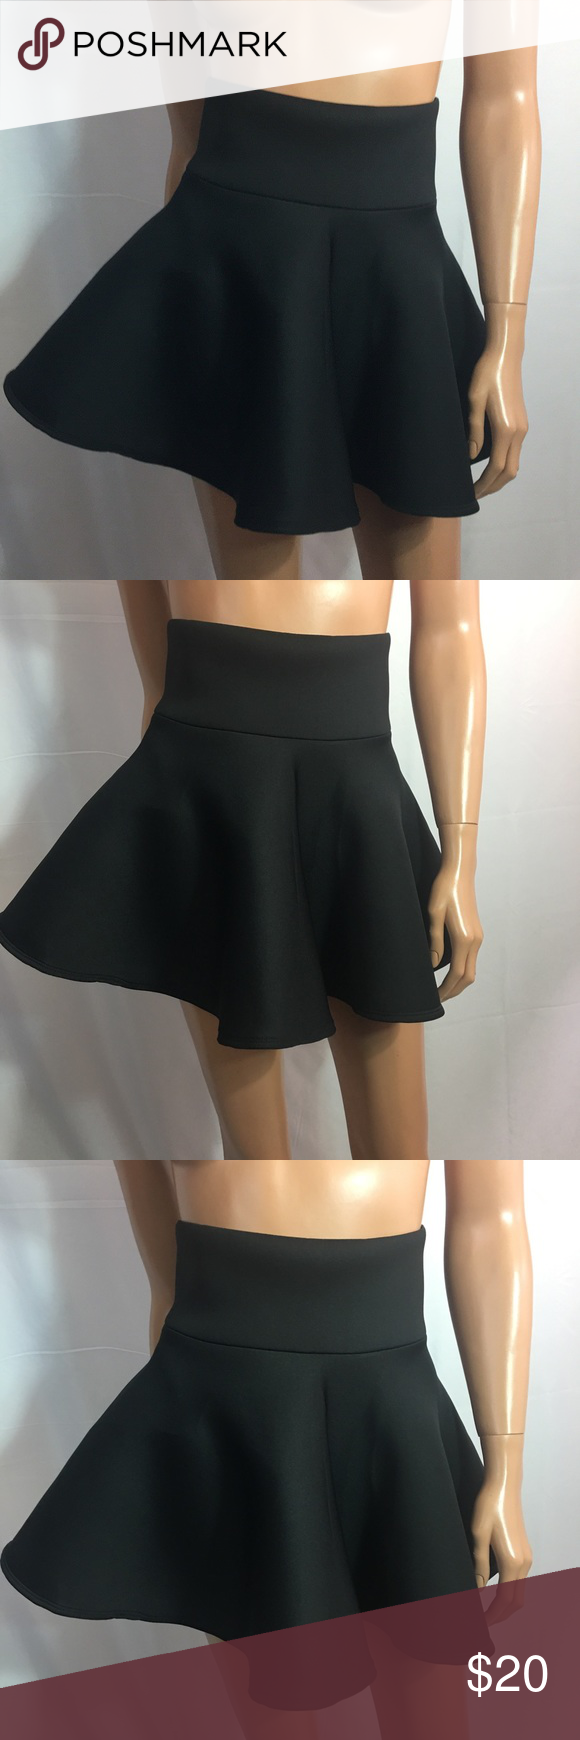 "70e38df3936d Reu fang garments high waist stretch mini skirt Reu fang garments junior  girl ,high waist stretch mini skirt , flared plain, waist 12.5"" (full waist  25"") ..."